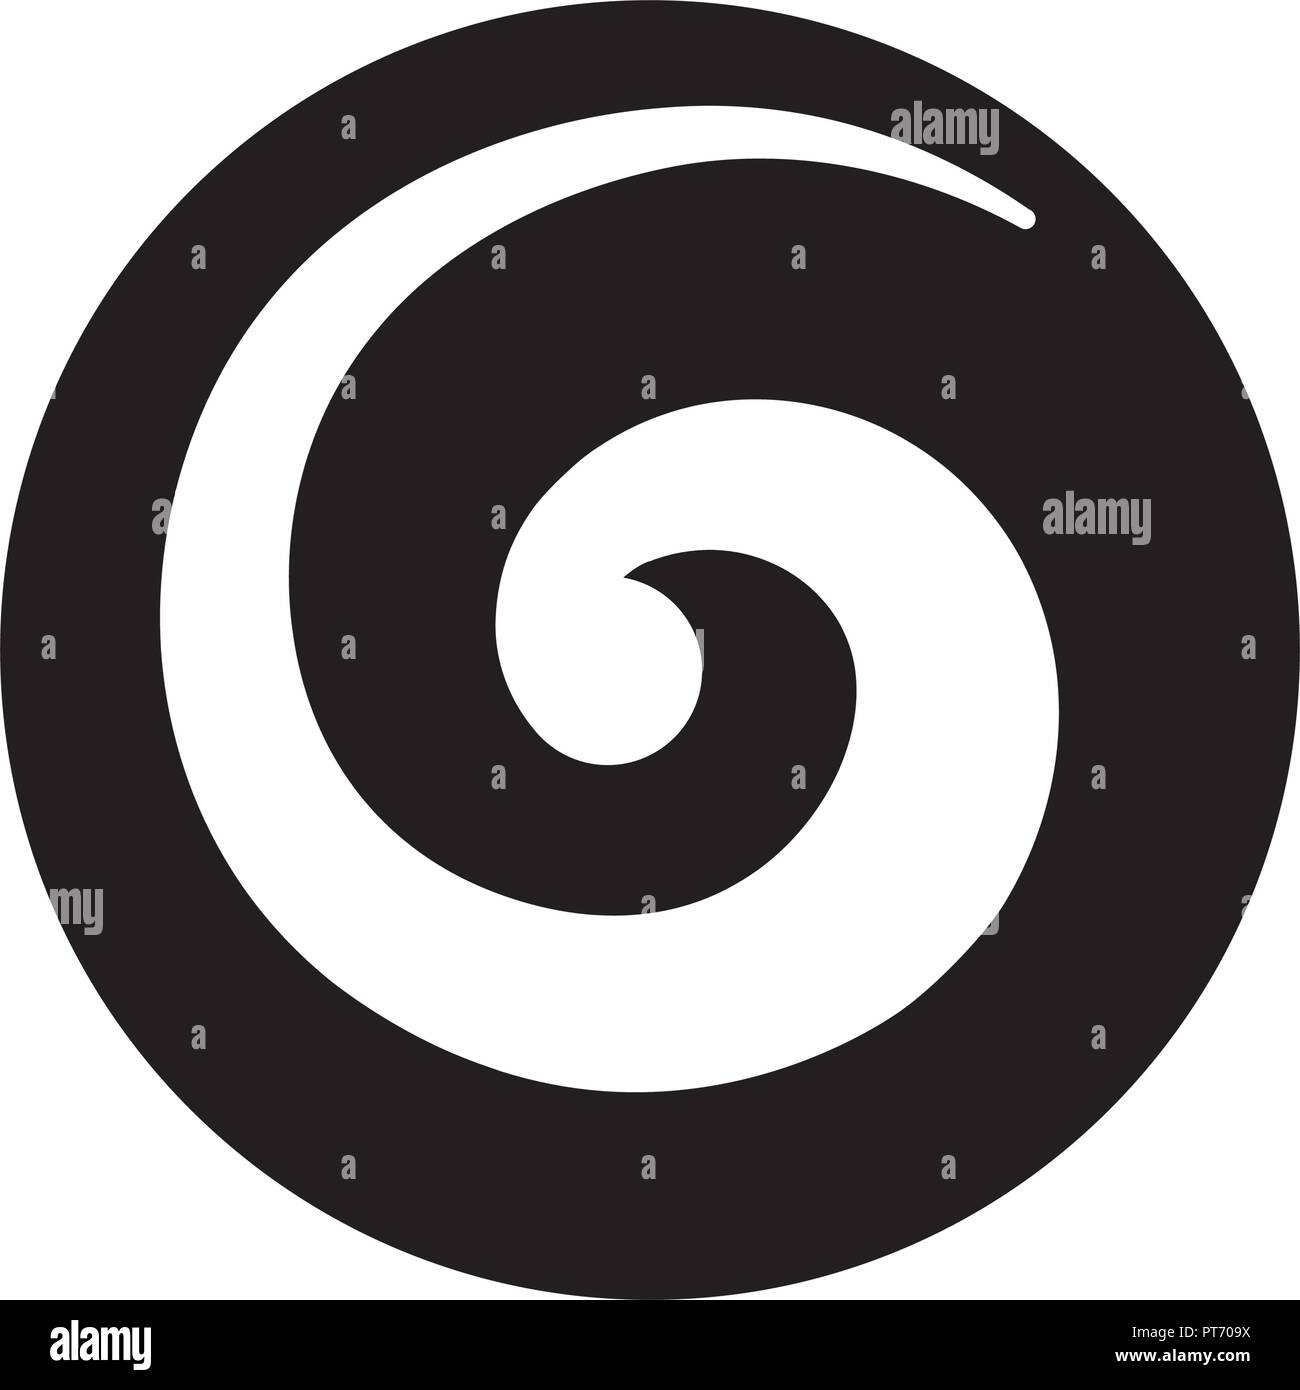 69 best Double koru images on Pinterest | Bones, Bone ... |Koru Symbol